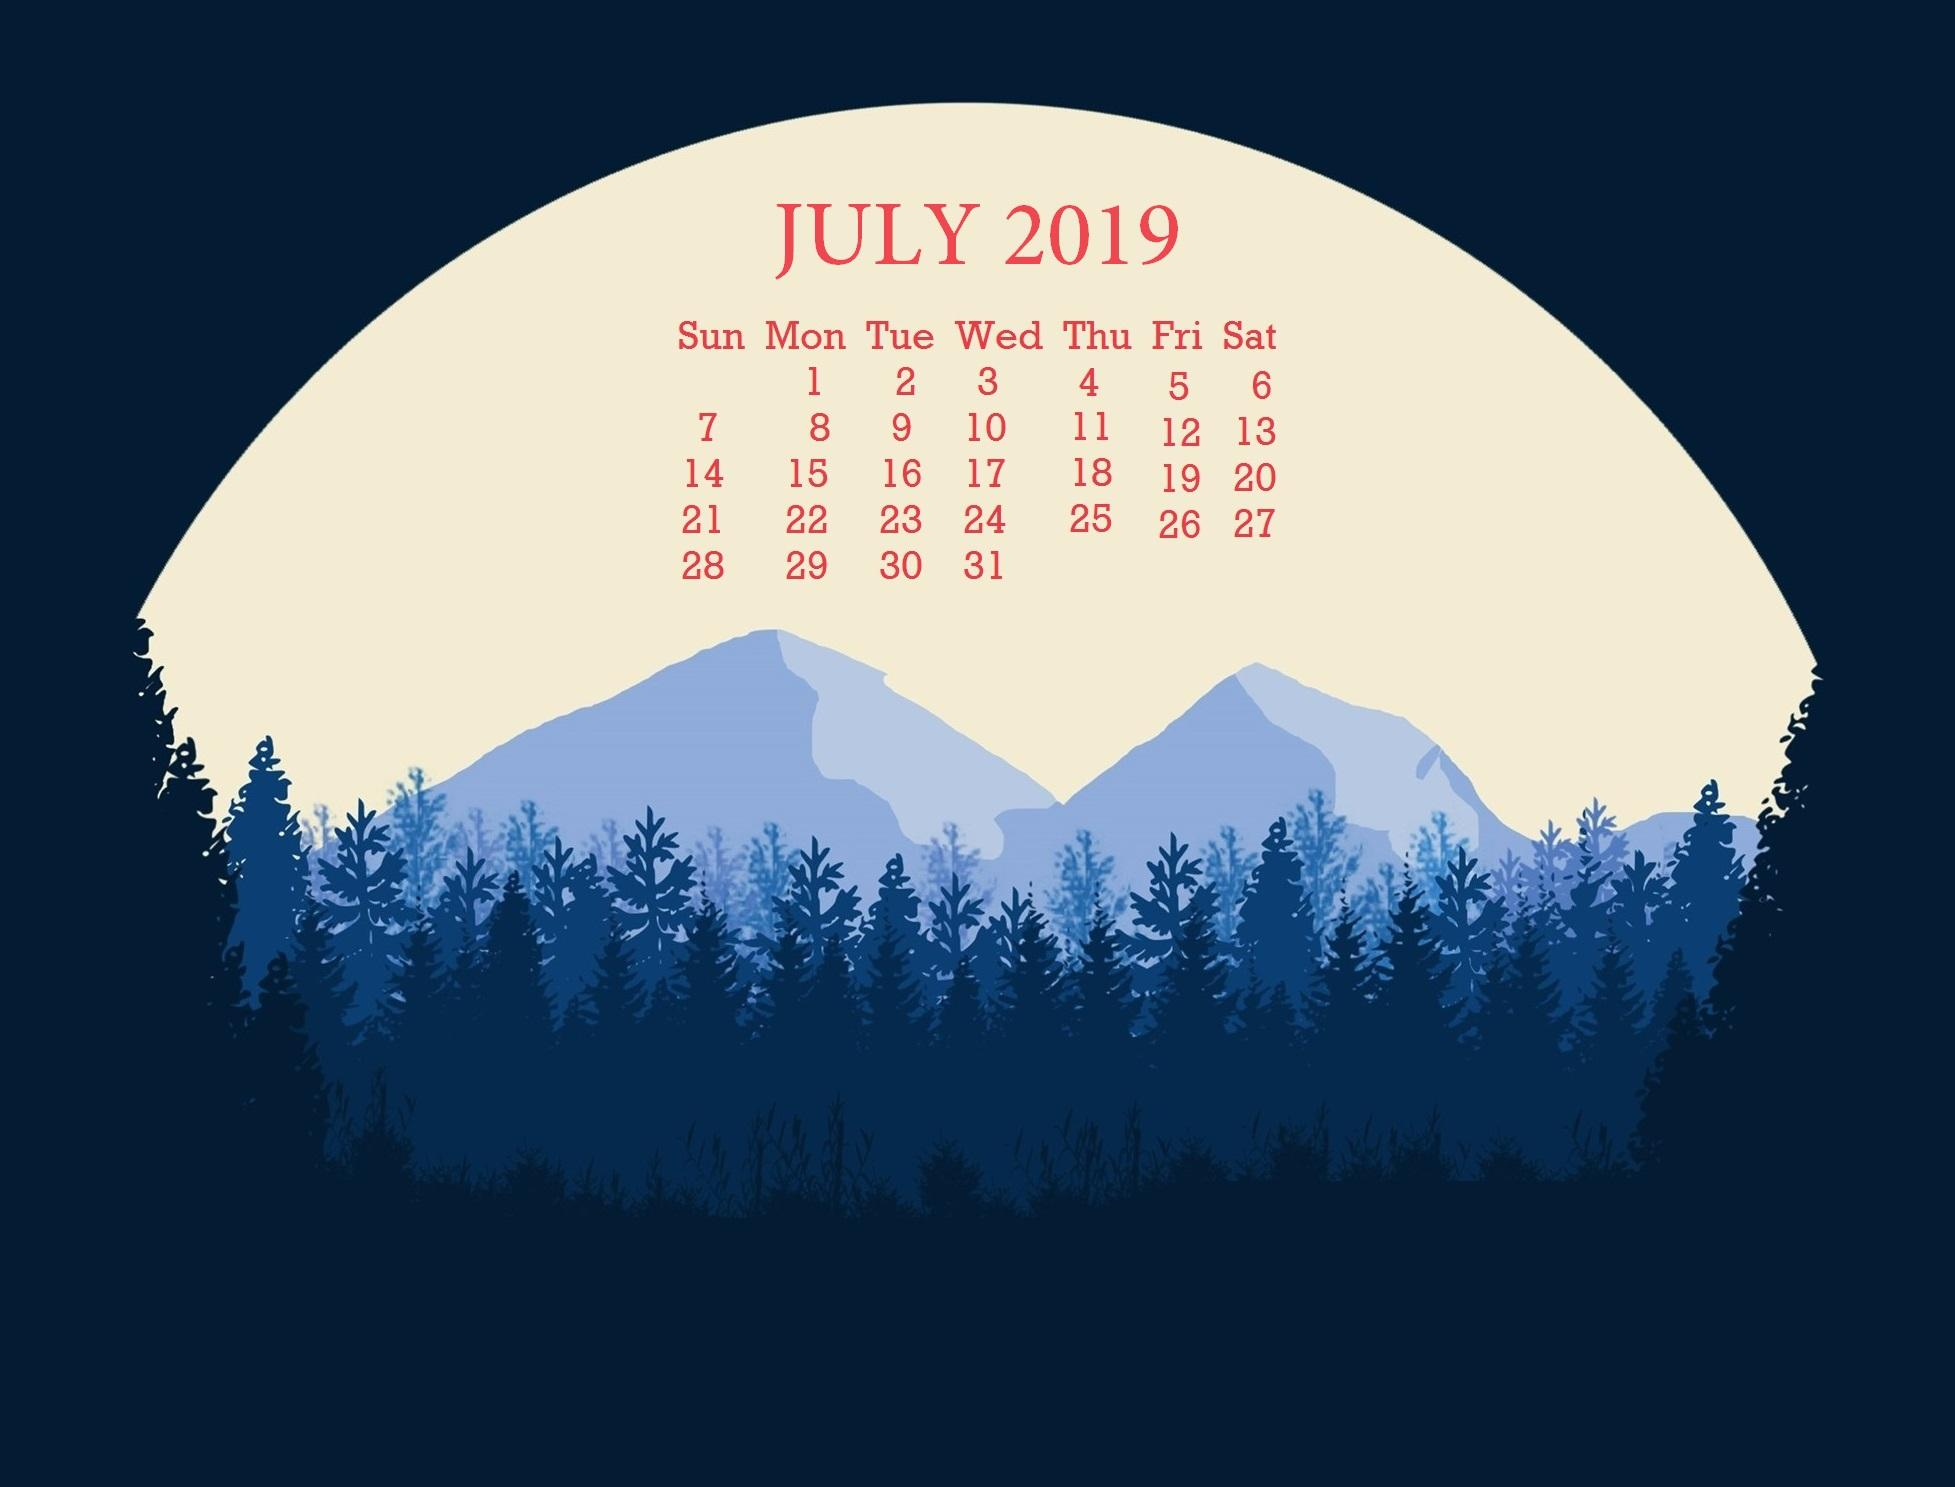 July 2019 Desktop Wallpapers Calendar